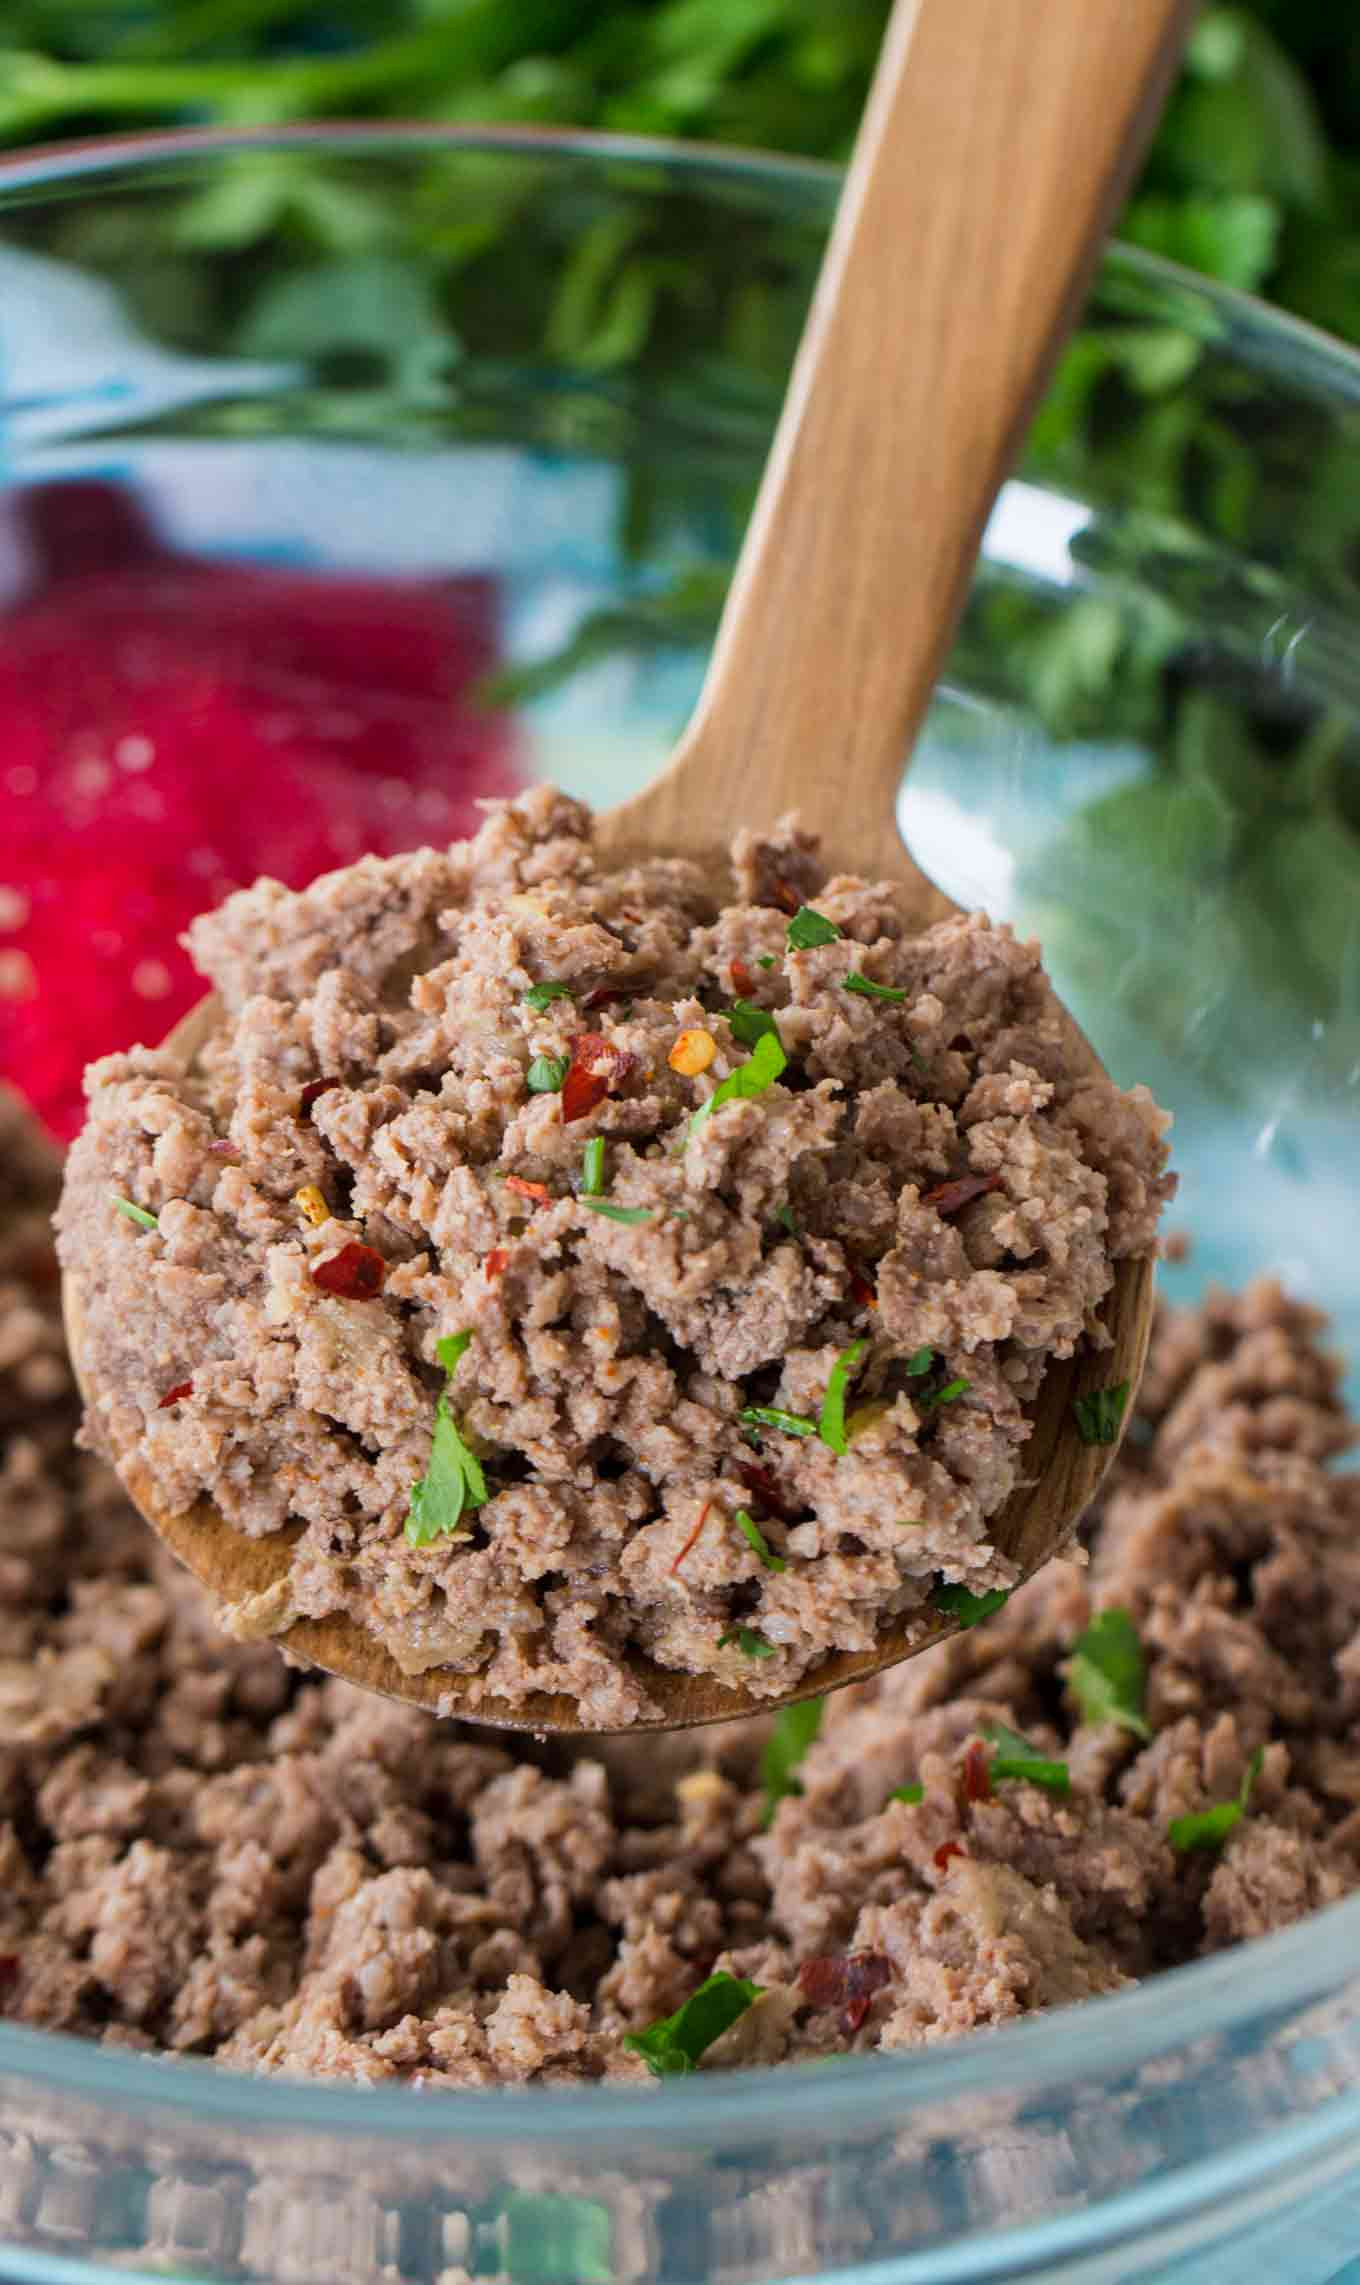 How To Make Ground Beef  How To Cook Frozen Ground Beef In The Instant Pot Sweet